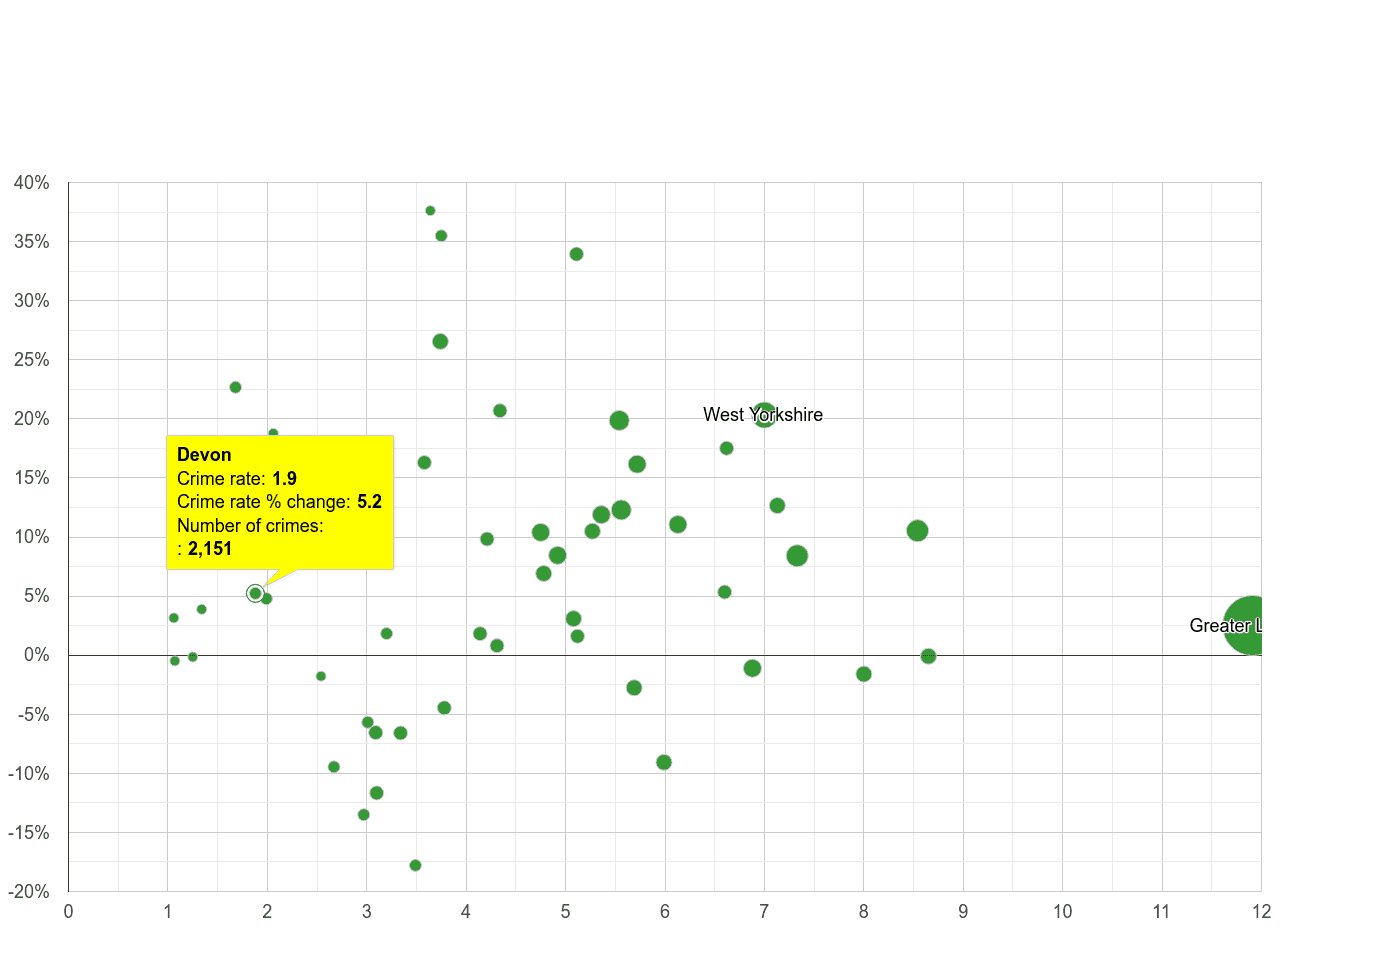 Devon vehicle crime rate compared to other counties